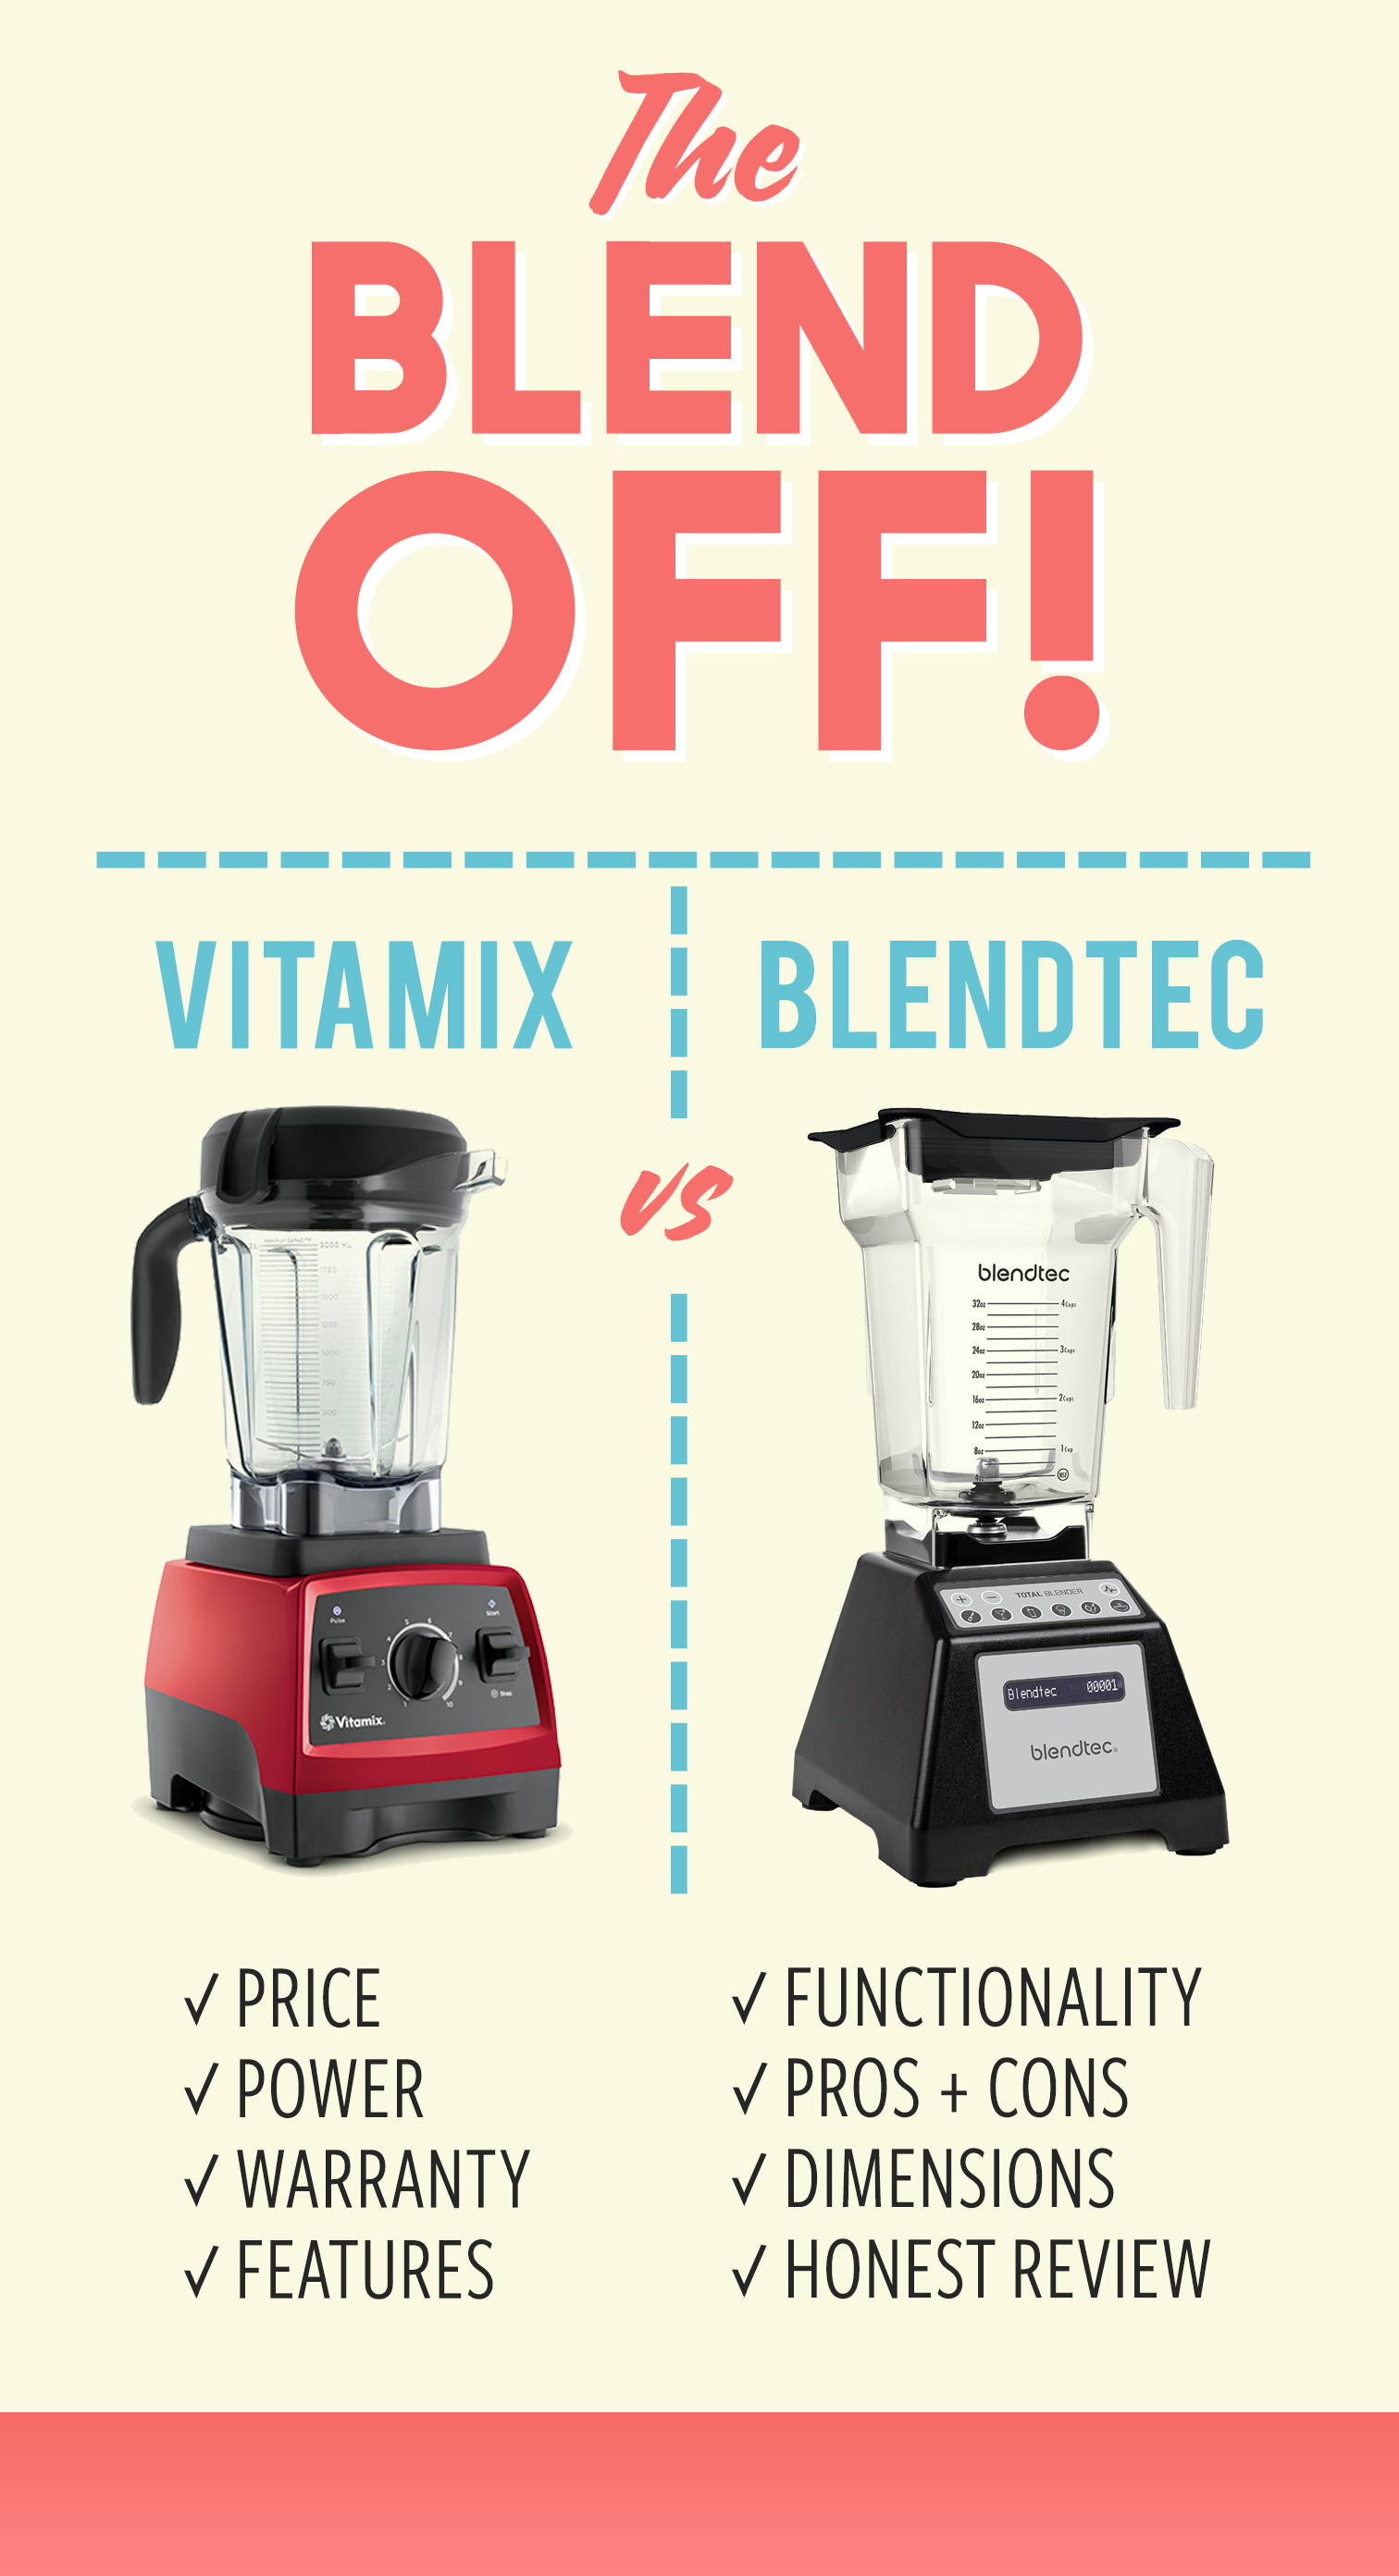 a612470dc57 Vitamix vs Blendtec Blender Review